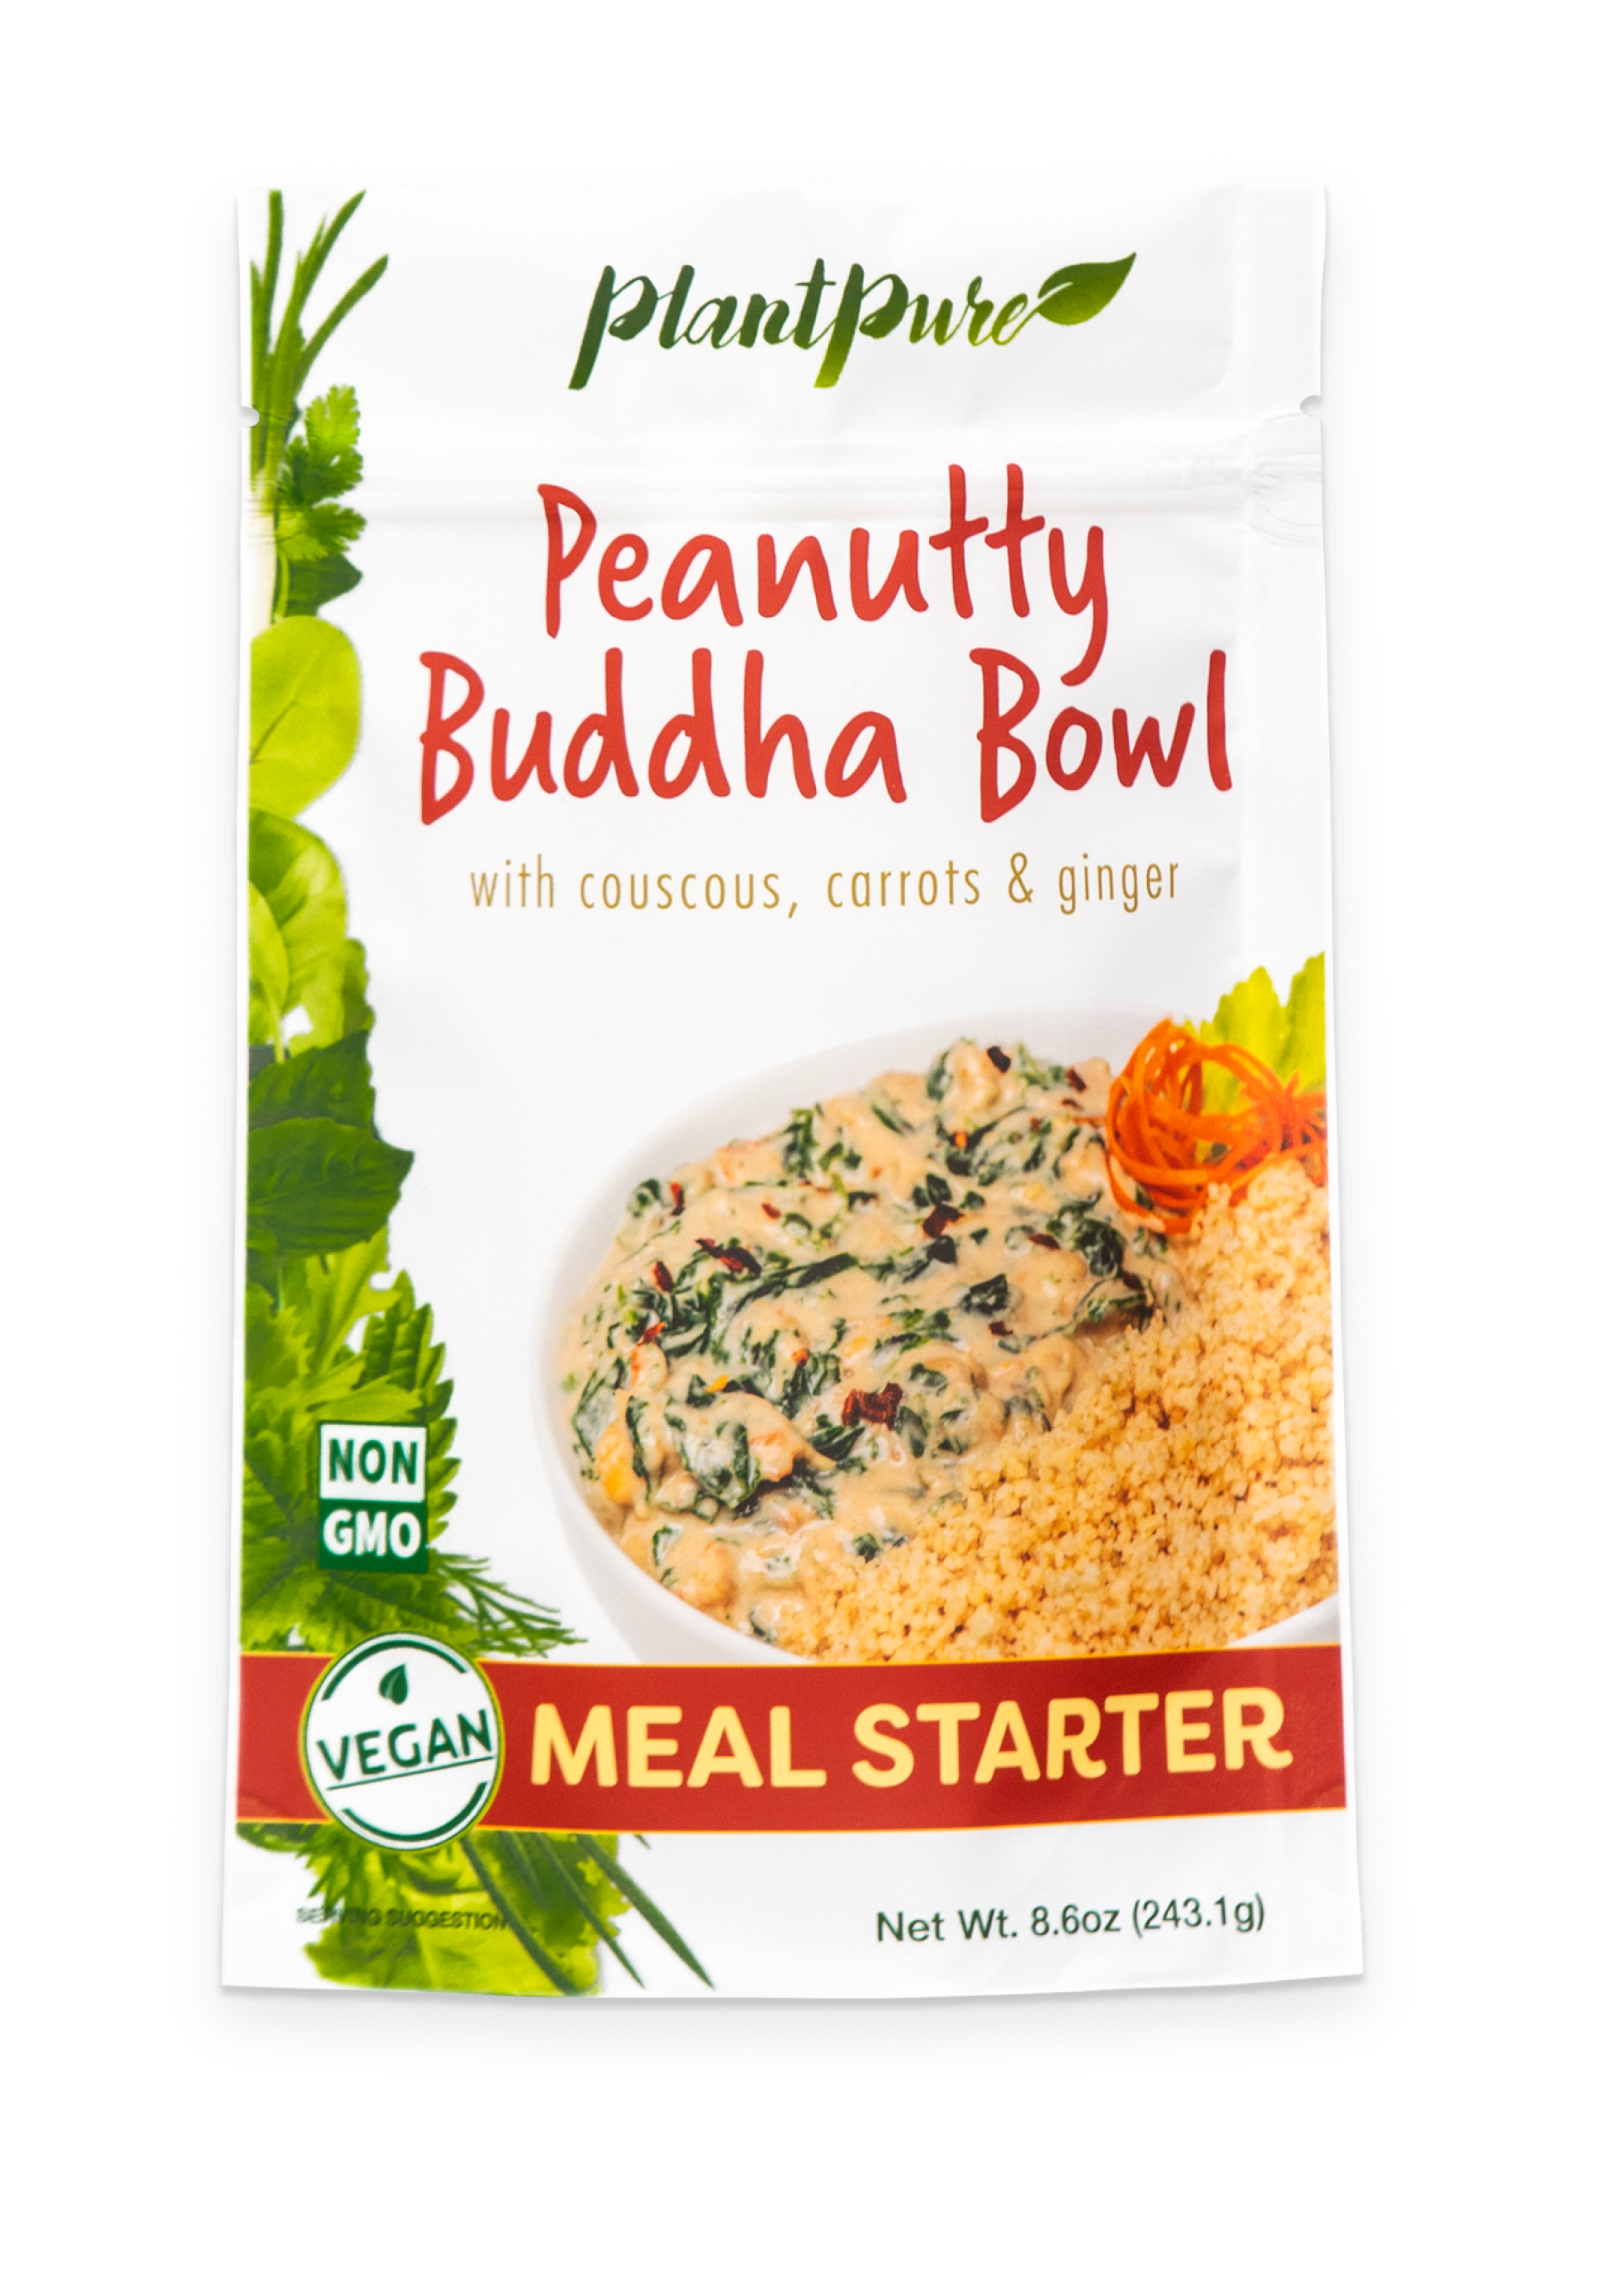 Peanutty Buddha Bowl